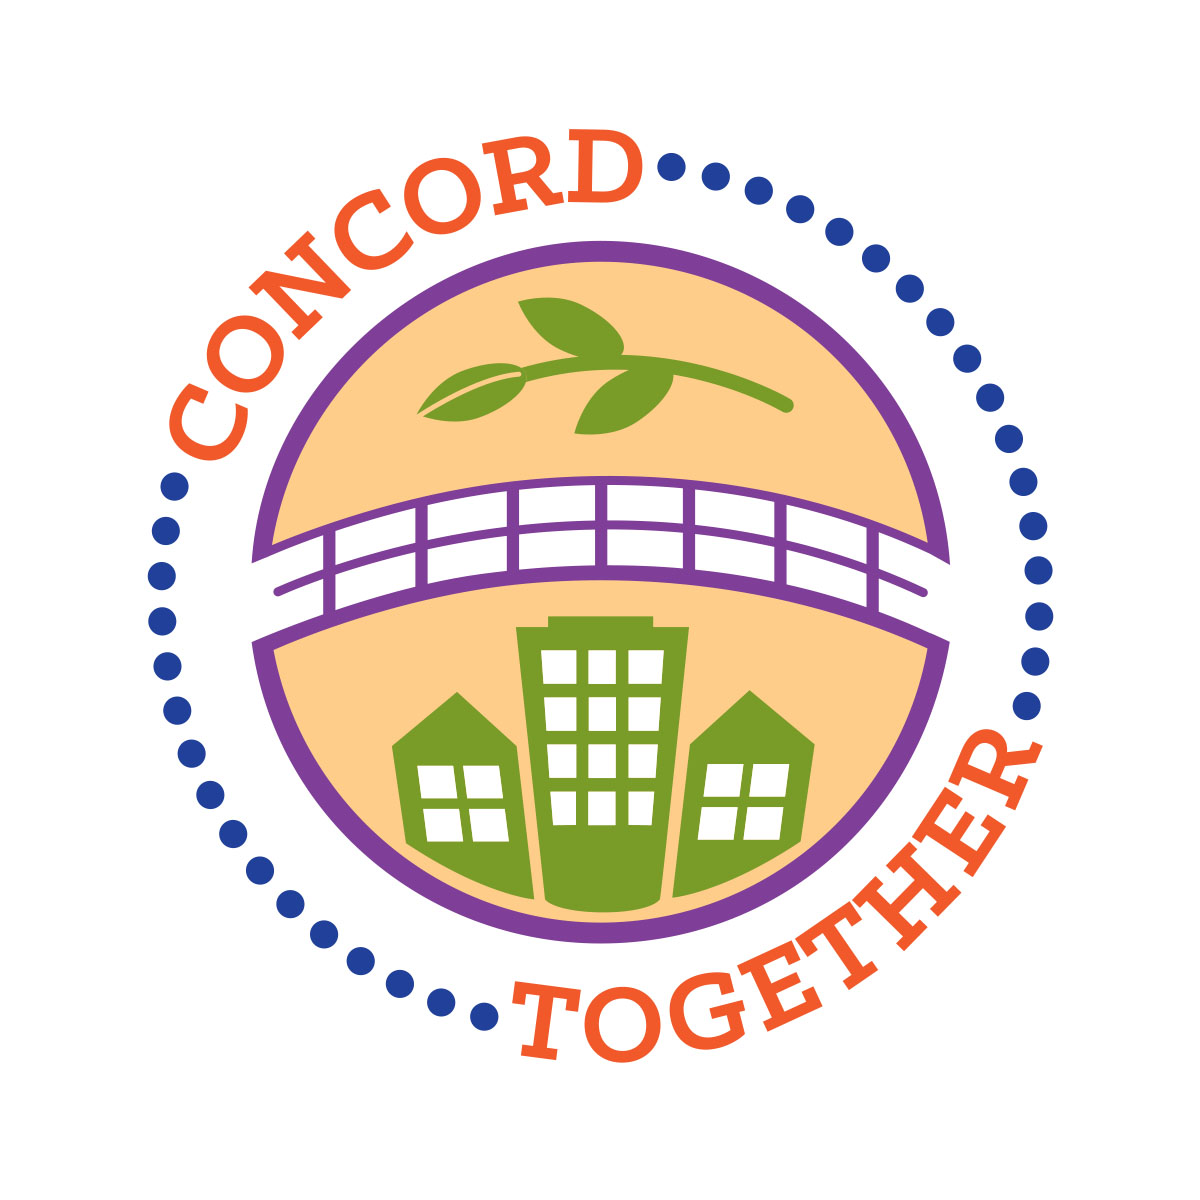 Community Chest, Concord Together Partner To Support Local Small Businesses